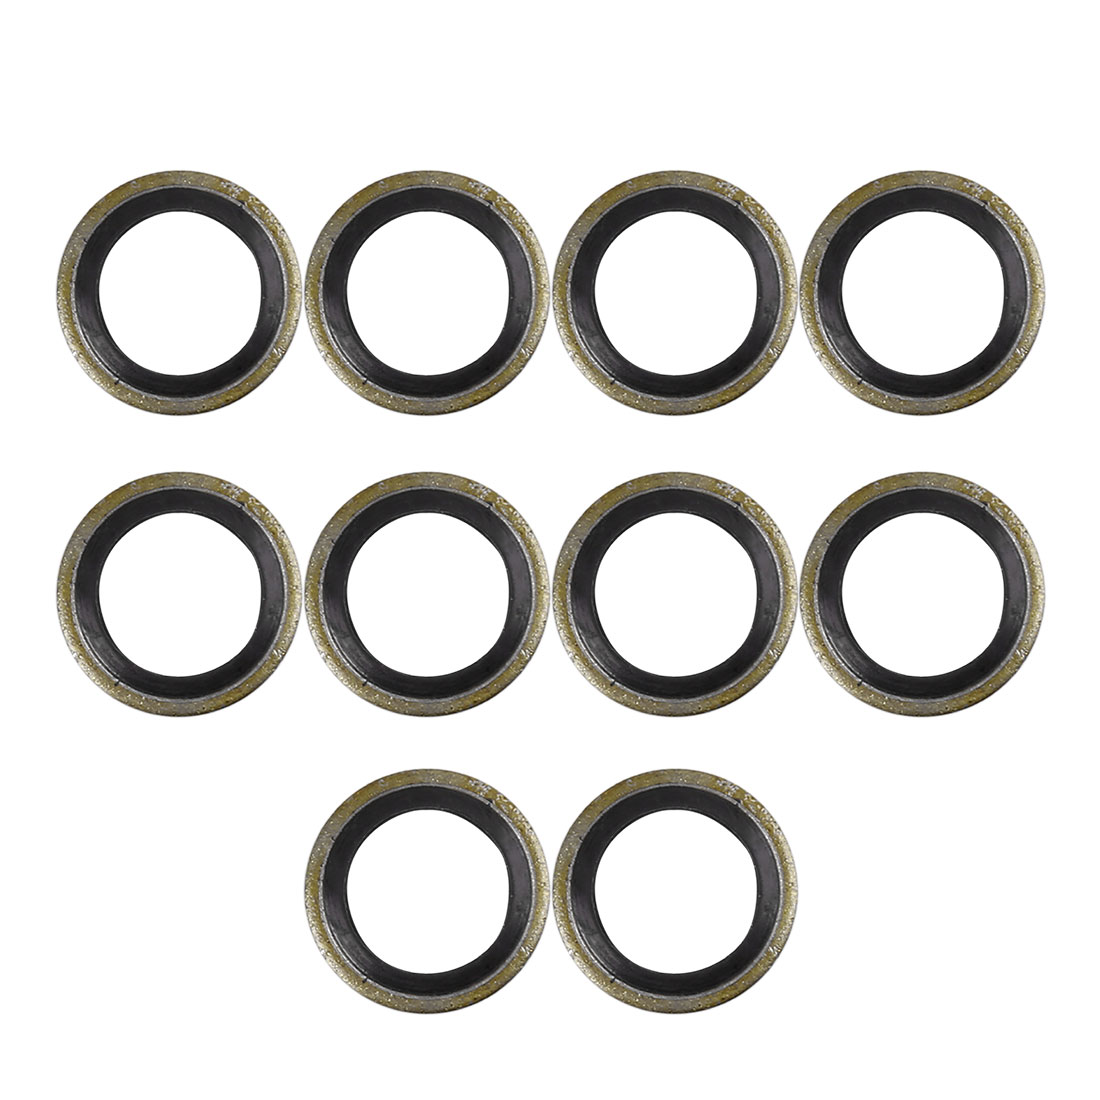 10pcs M10 Bronze Tone Car Engine Oil Drain Crush Flat Bonded Washer Gaskets